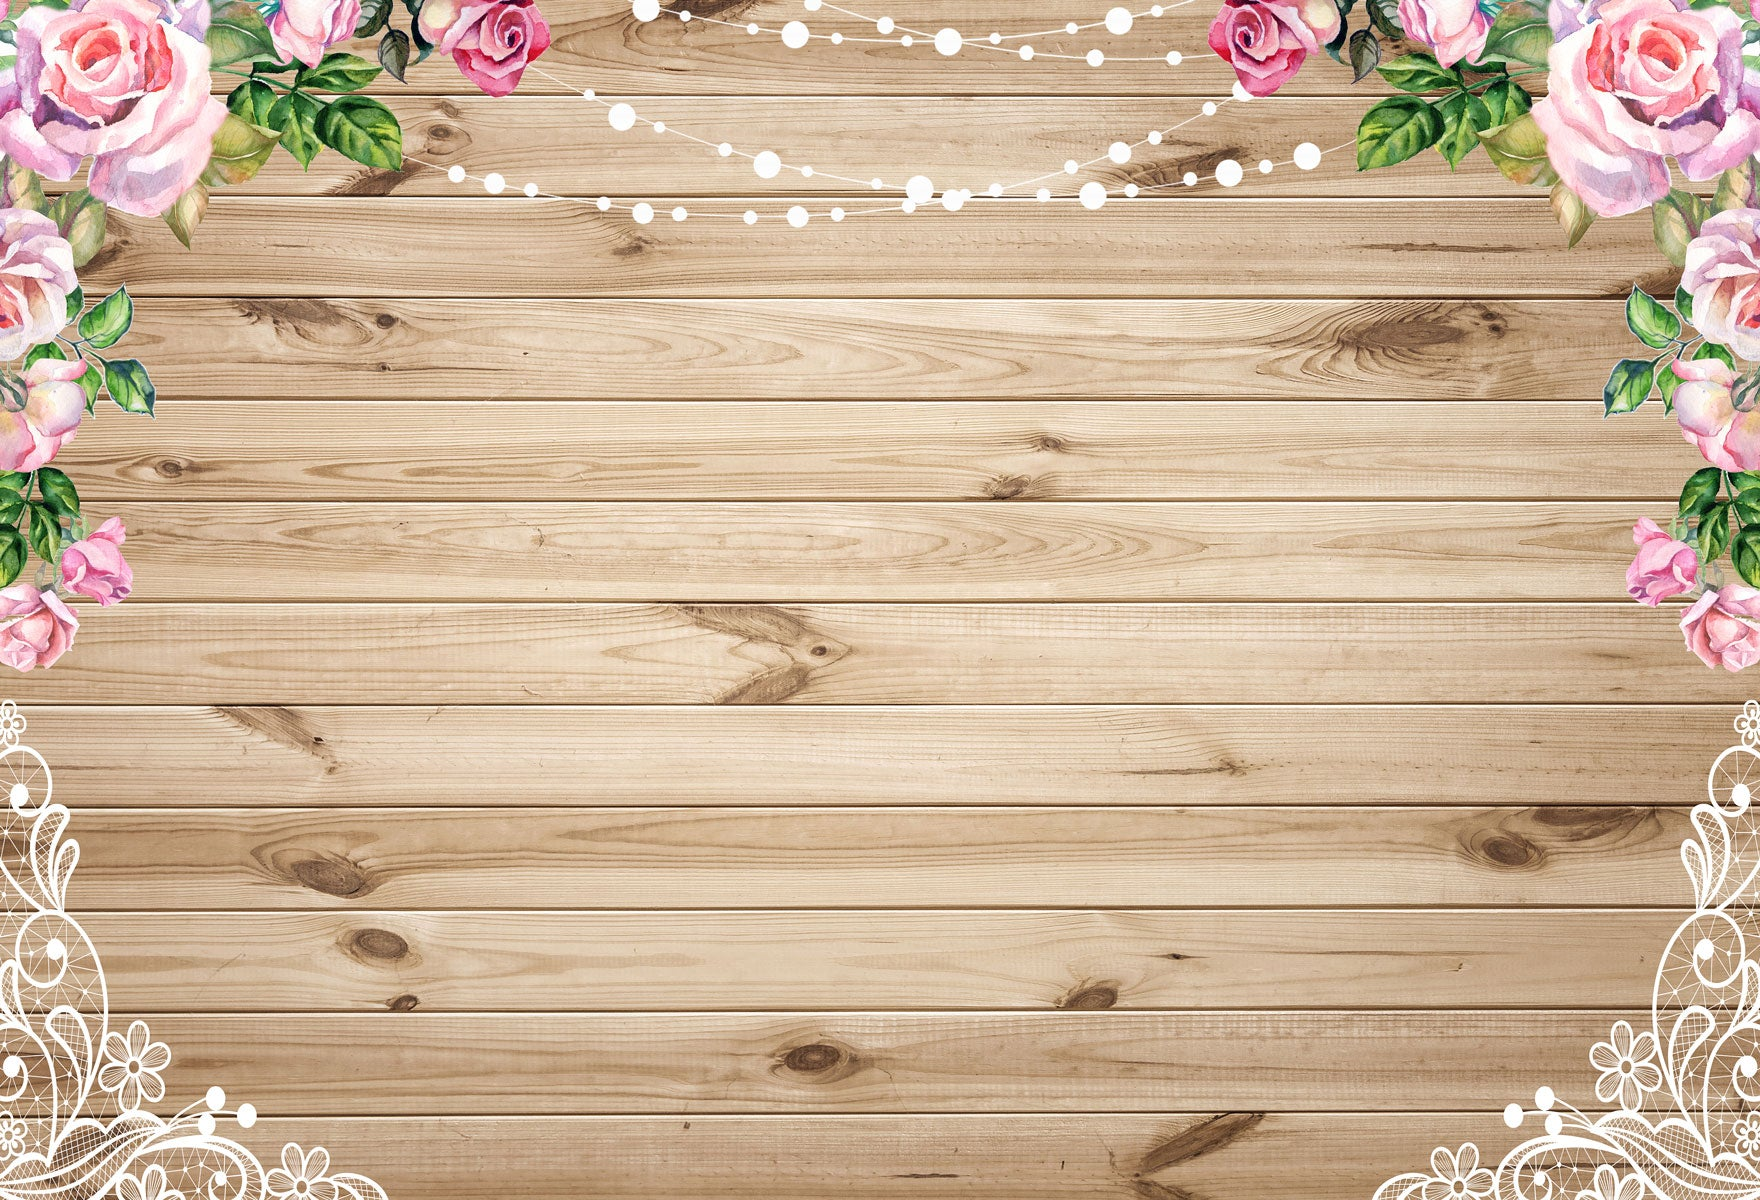 Fox Rolled Wood Board With Flower Vinyl Photos Backdrop-Foxbackdrop